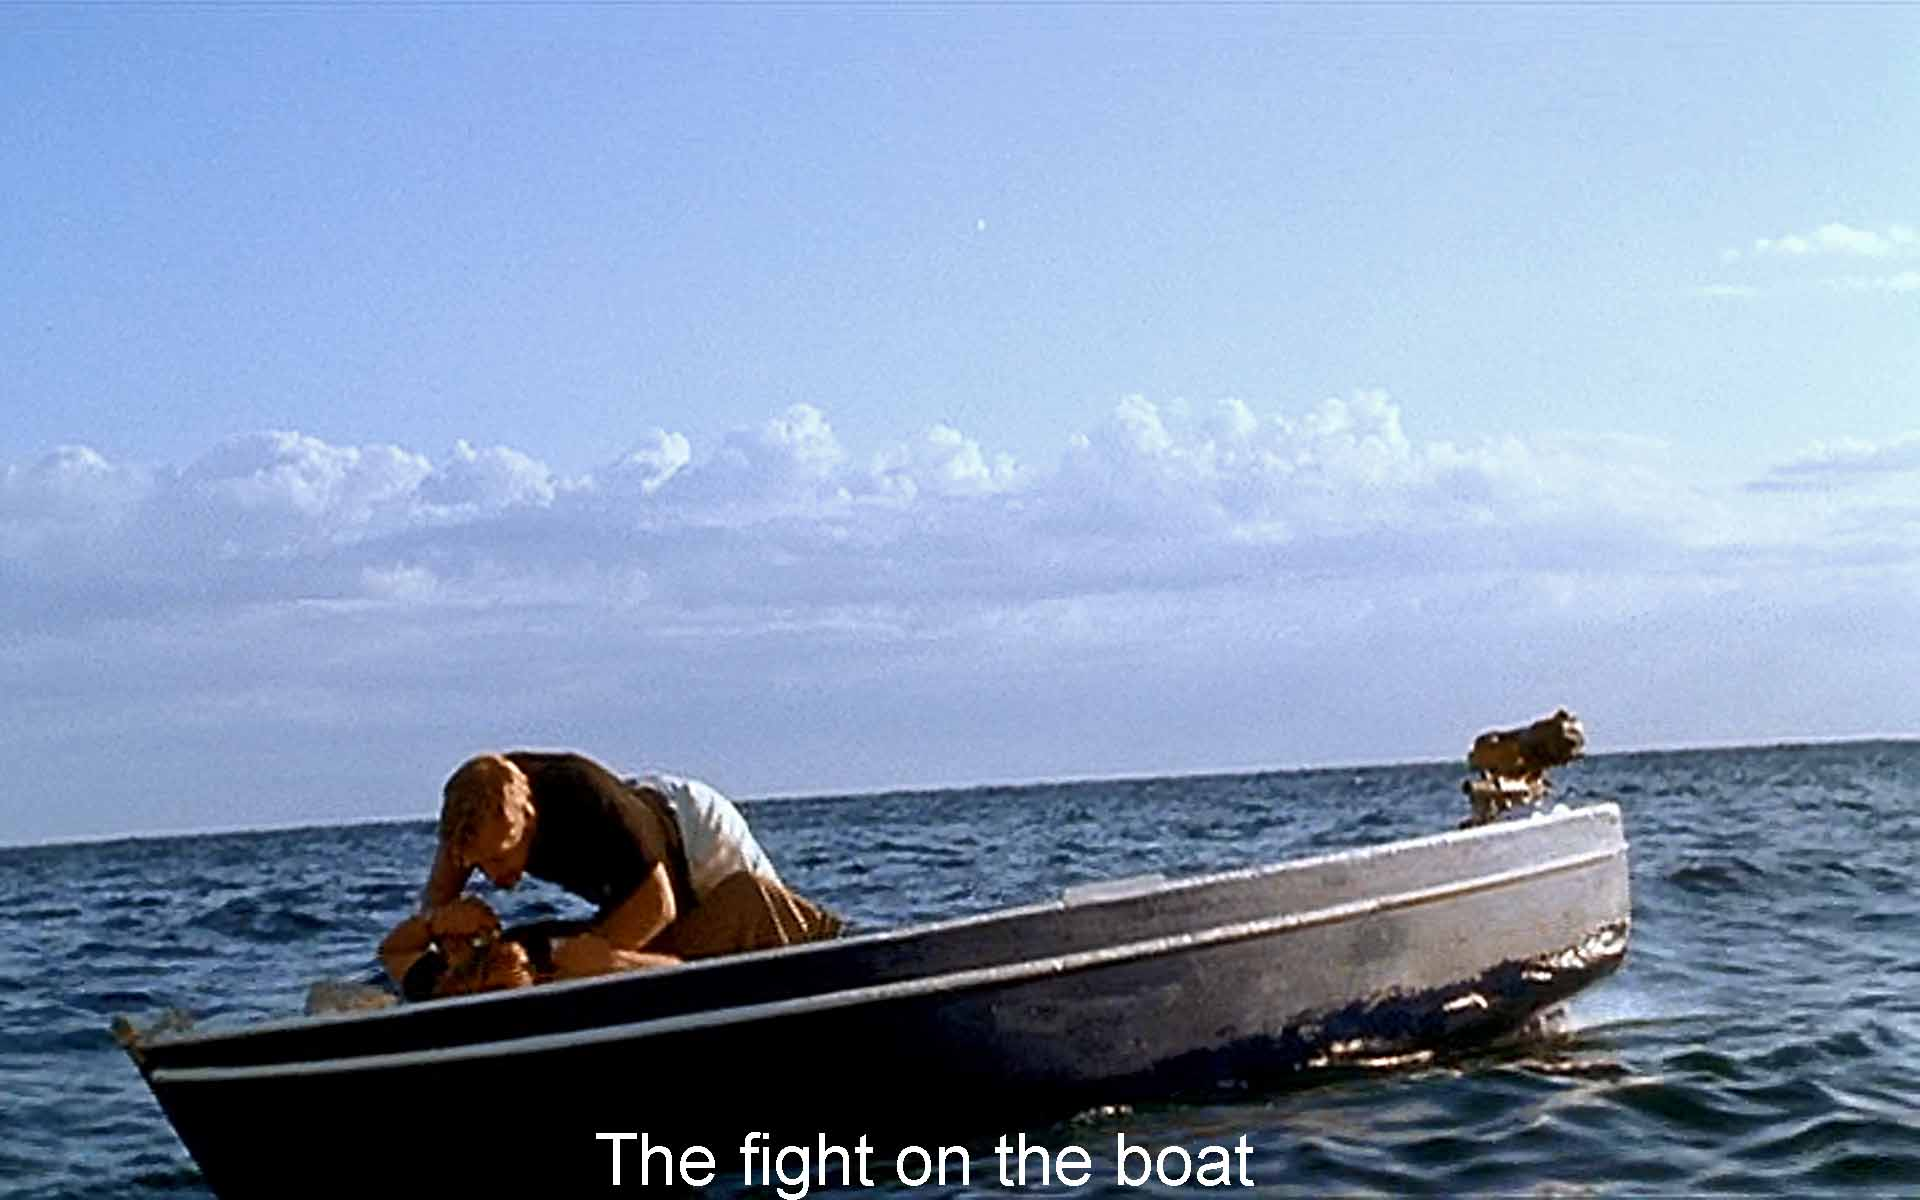 The fight on the boat